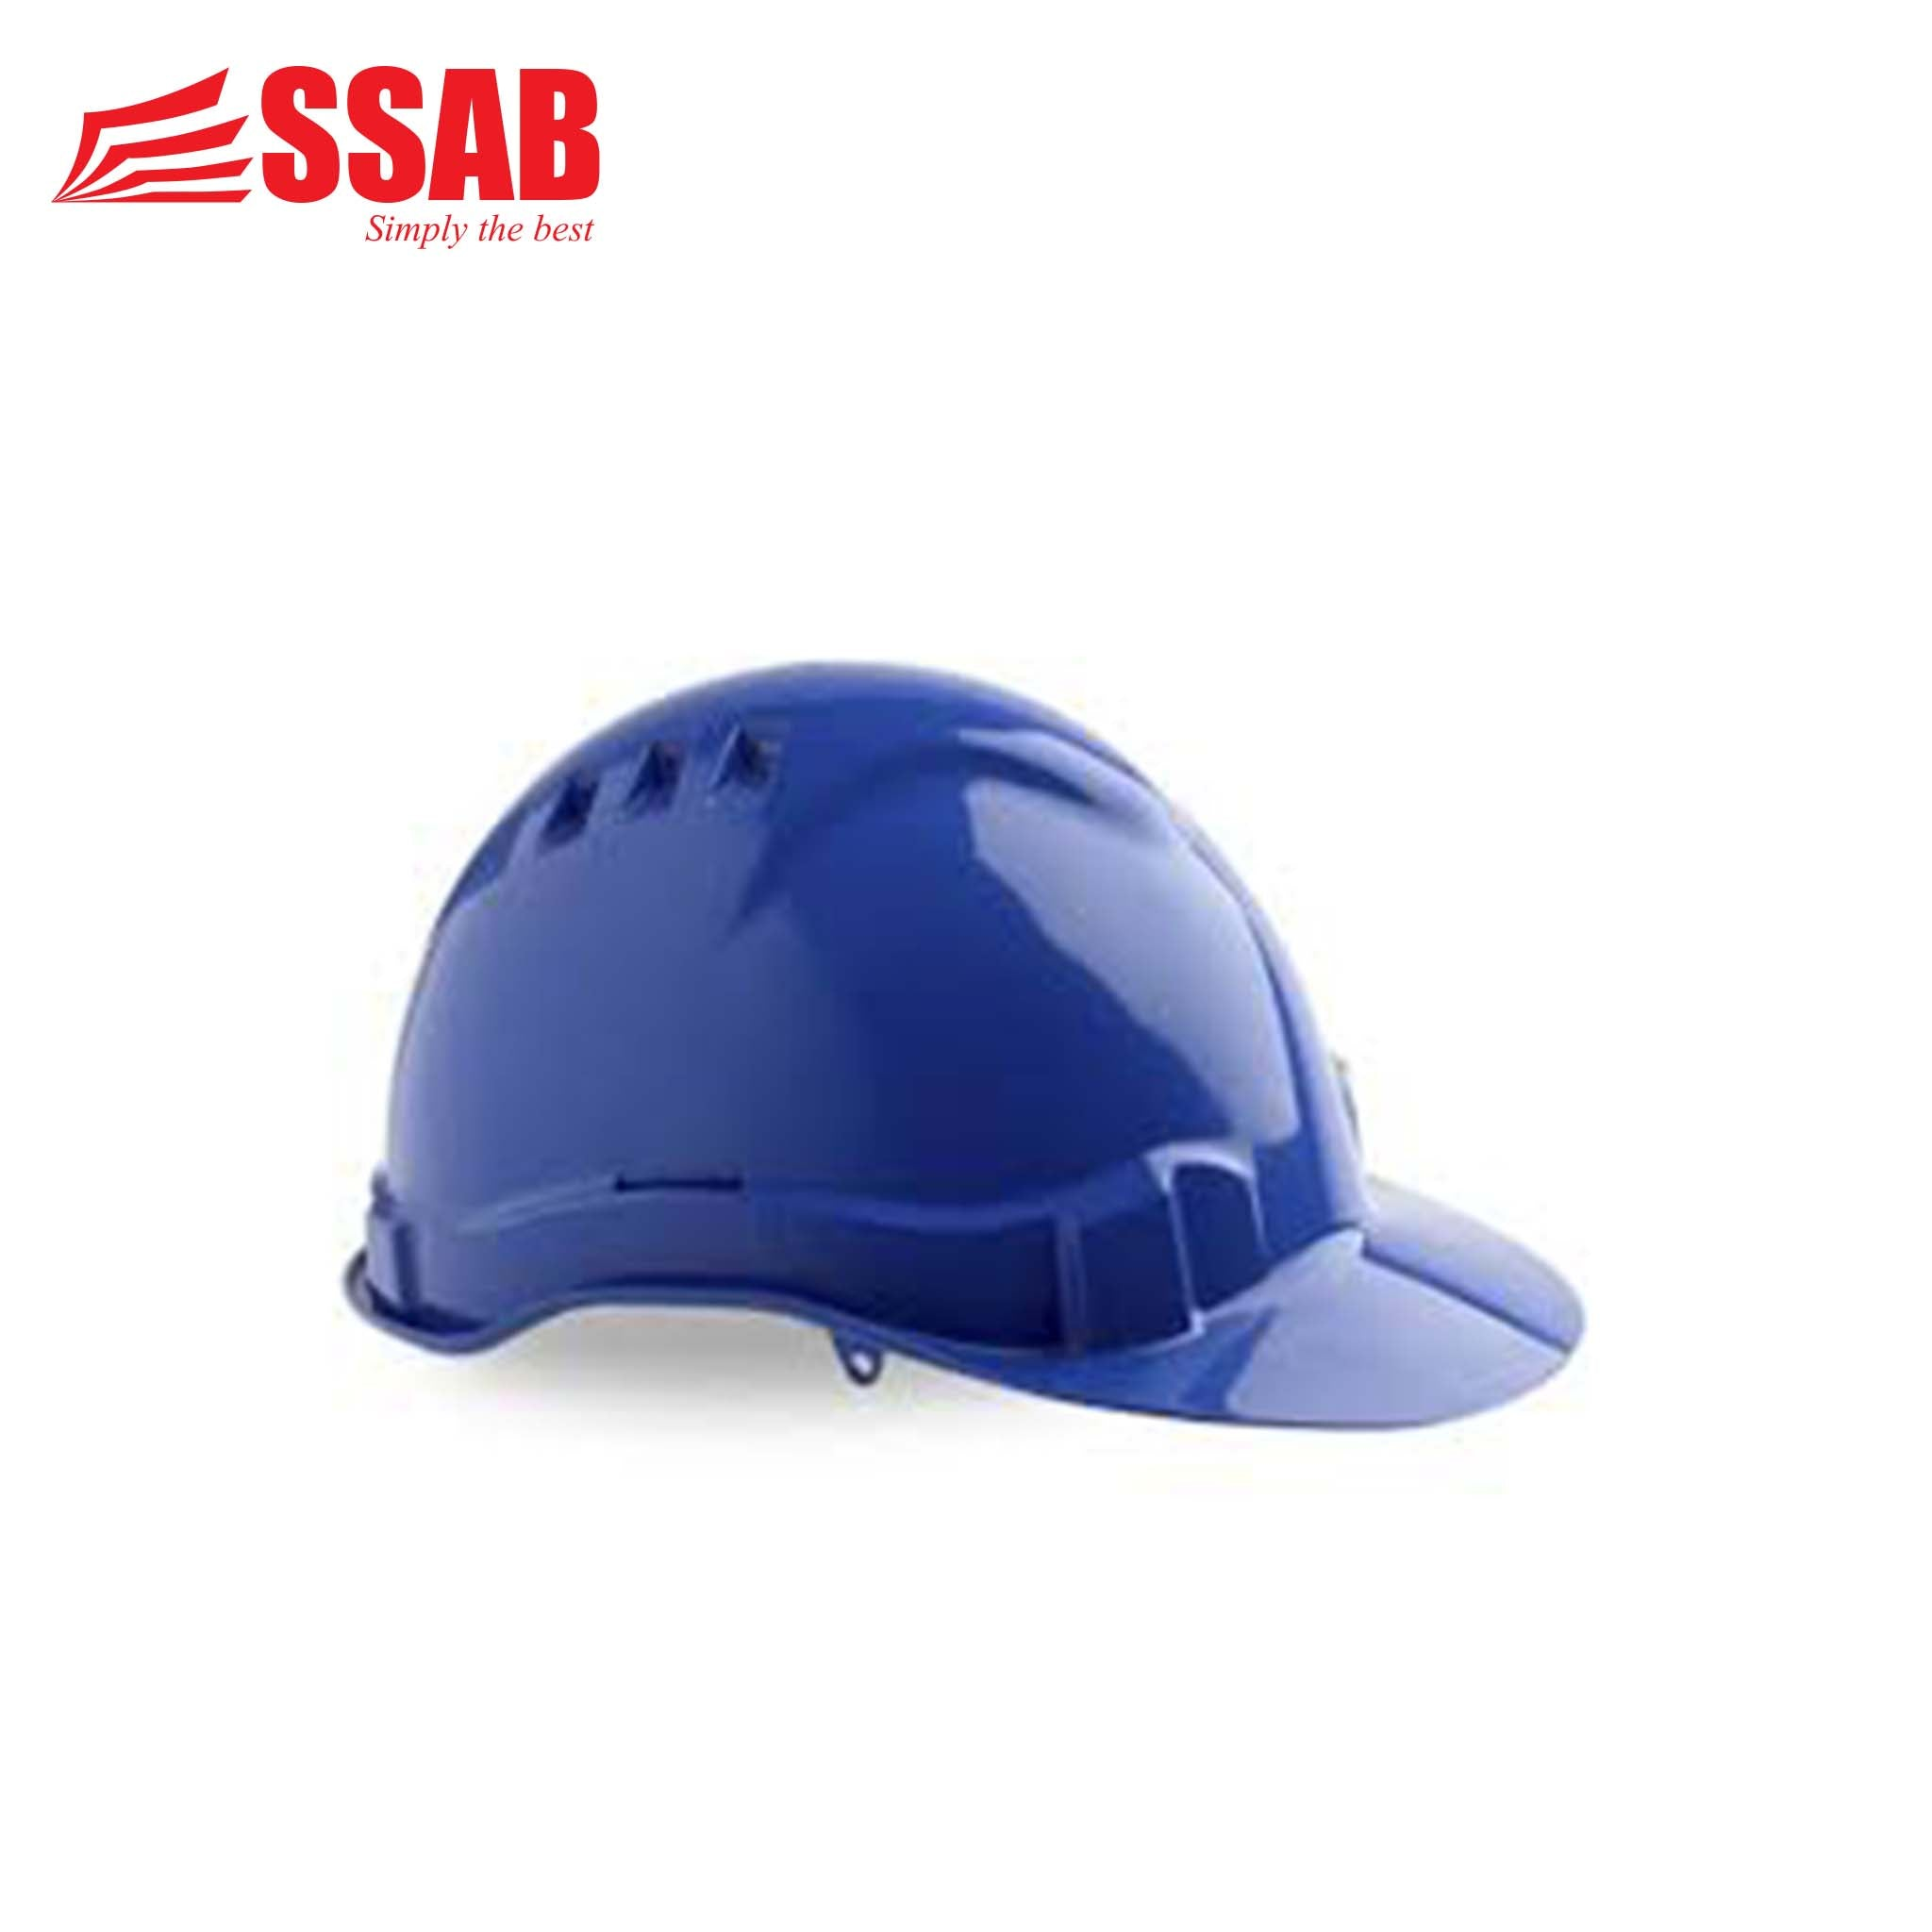 V6 Hard Hat - Blue